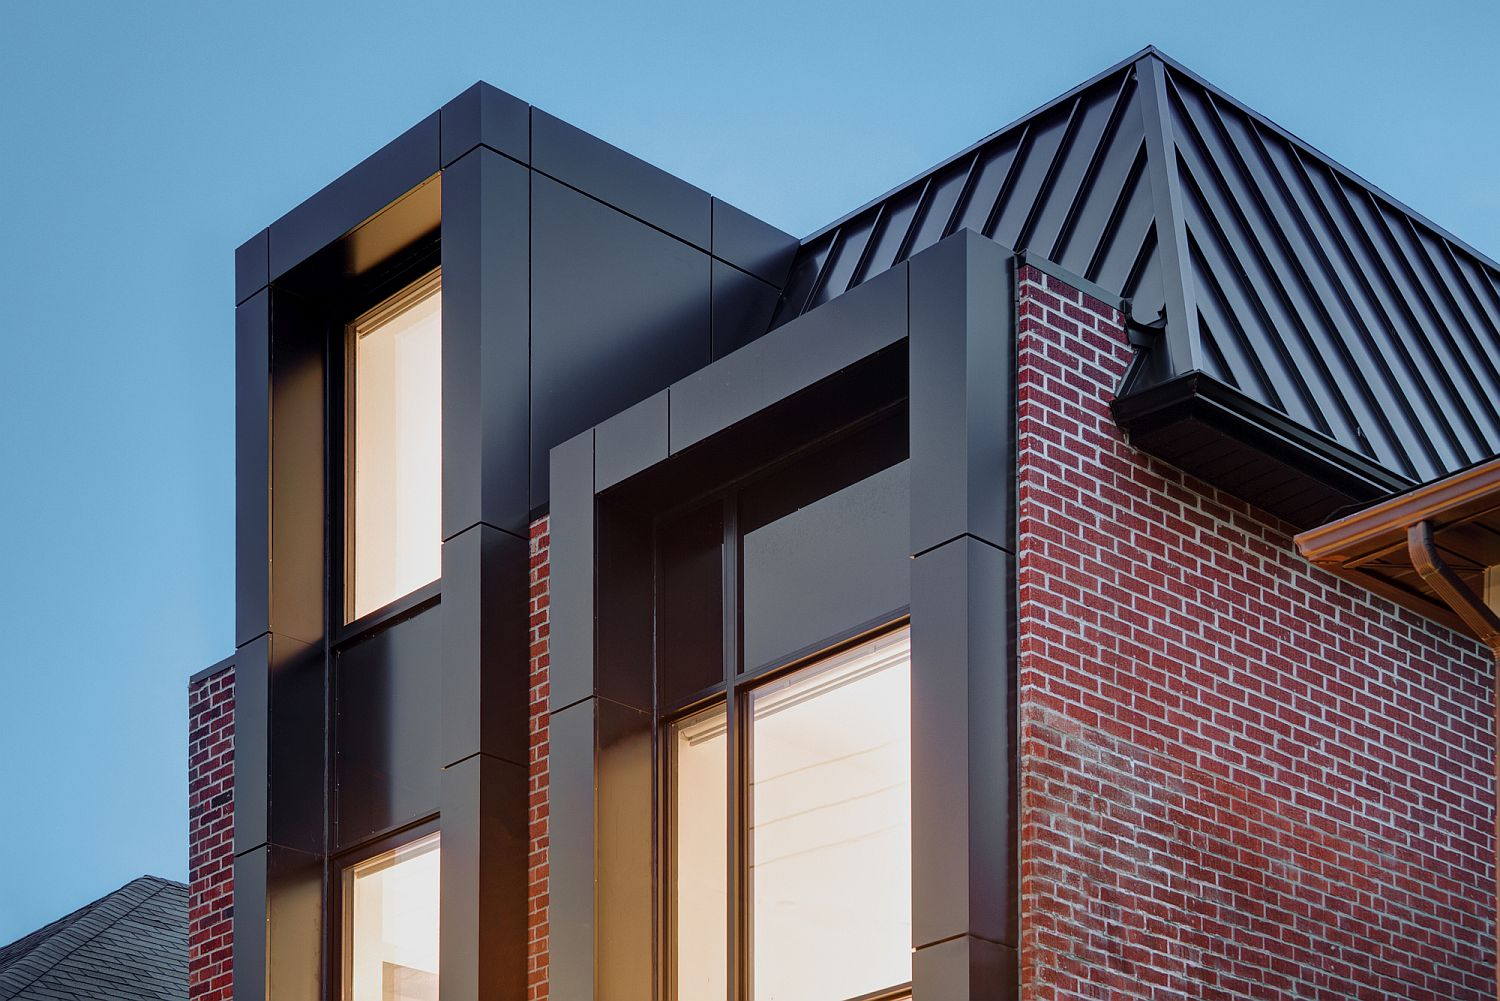 Metal-glass-and-brick-shape-the-exterior-of-this-Toronto-home